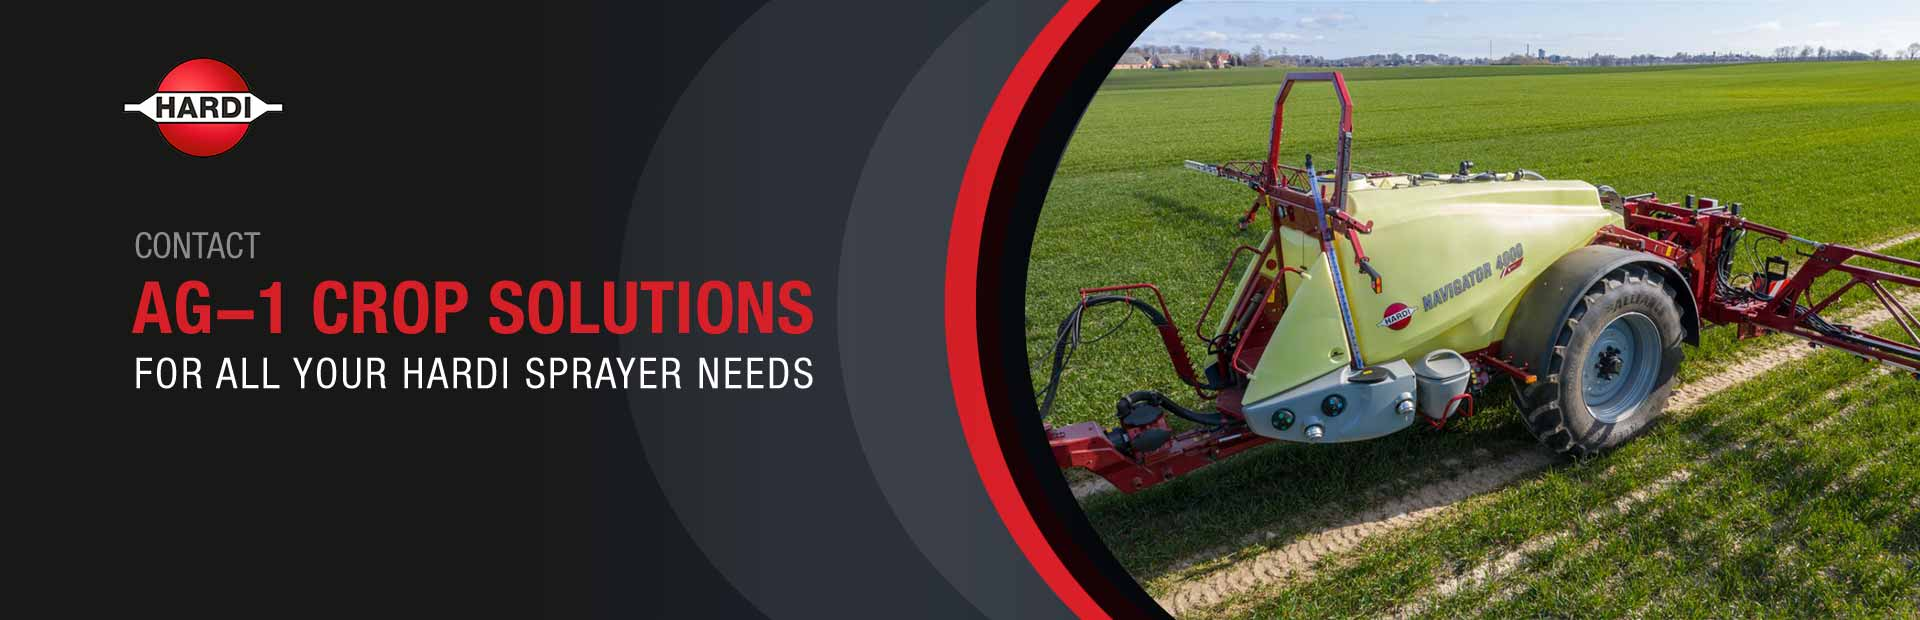 Contact Ag-1 Crop Solutions for all your Hardi sprayer needs!